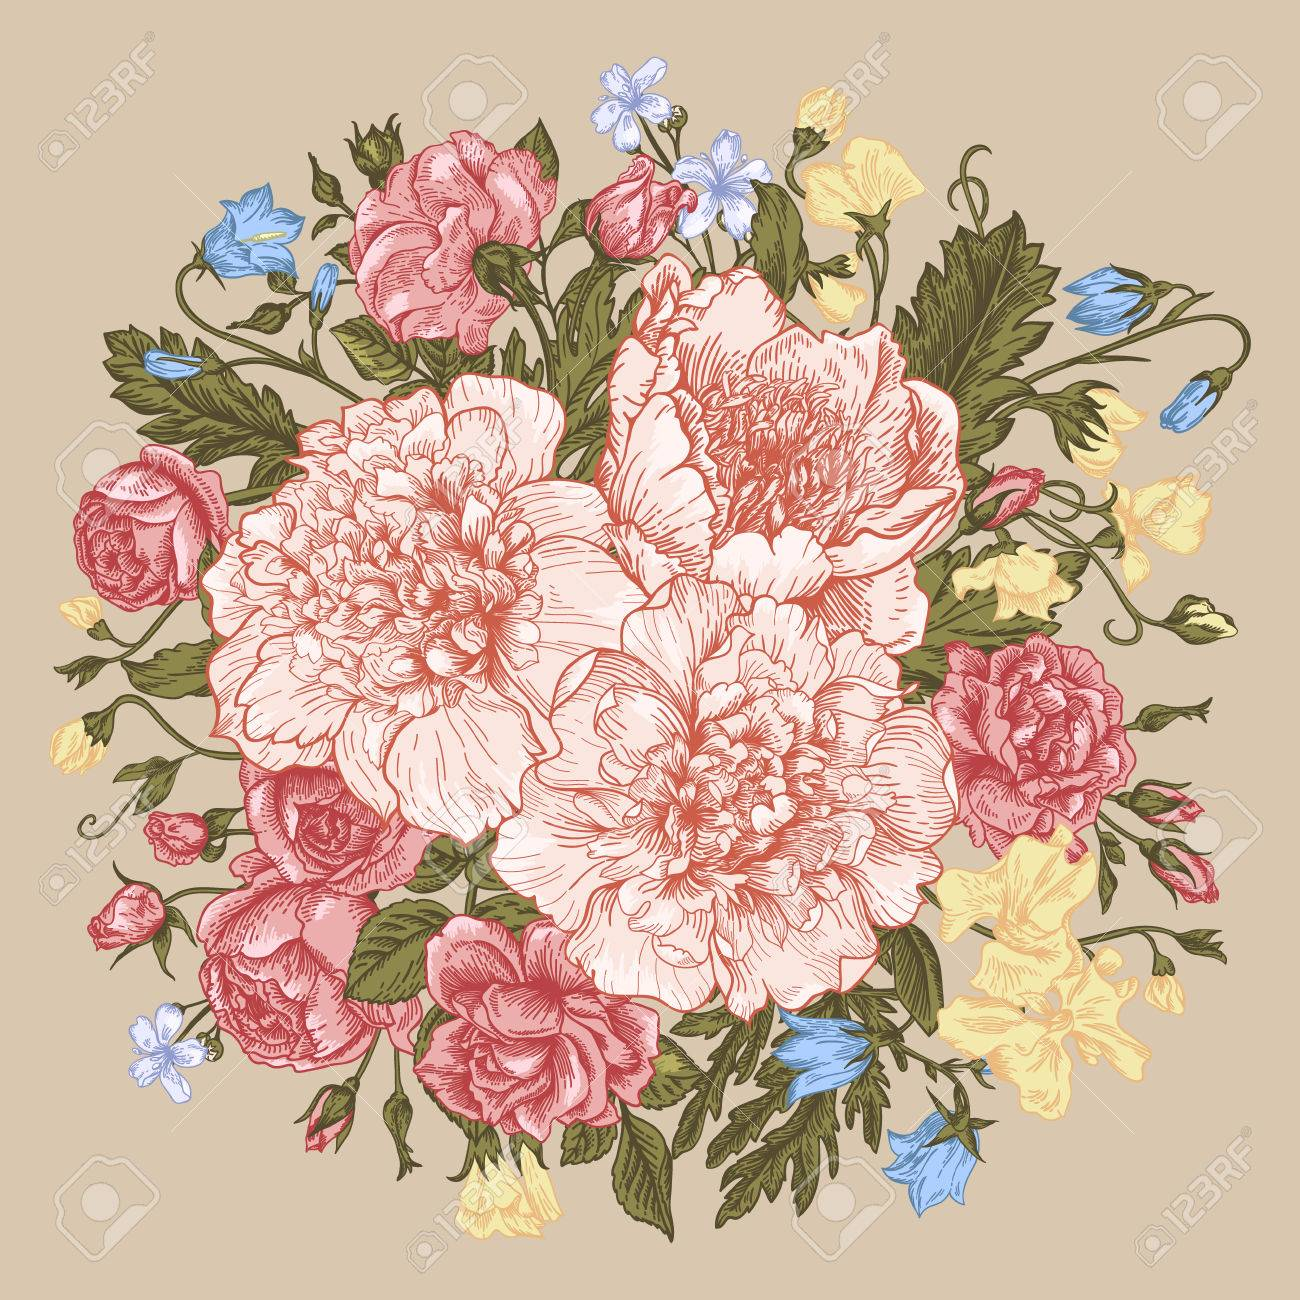 Vintage Background With A Round Bouquet Of Summer Flowers In Pastel